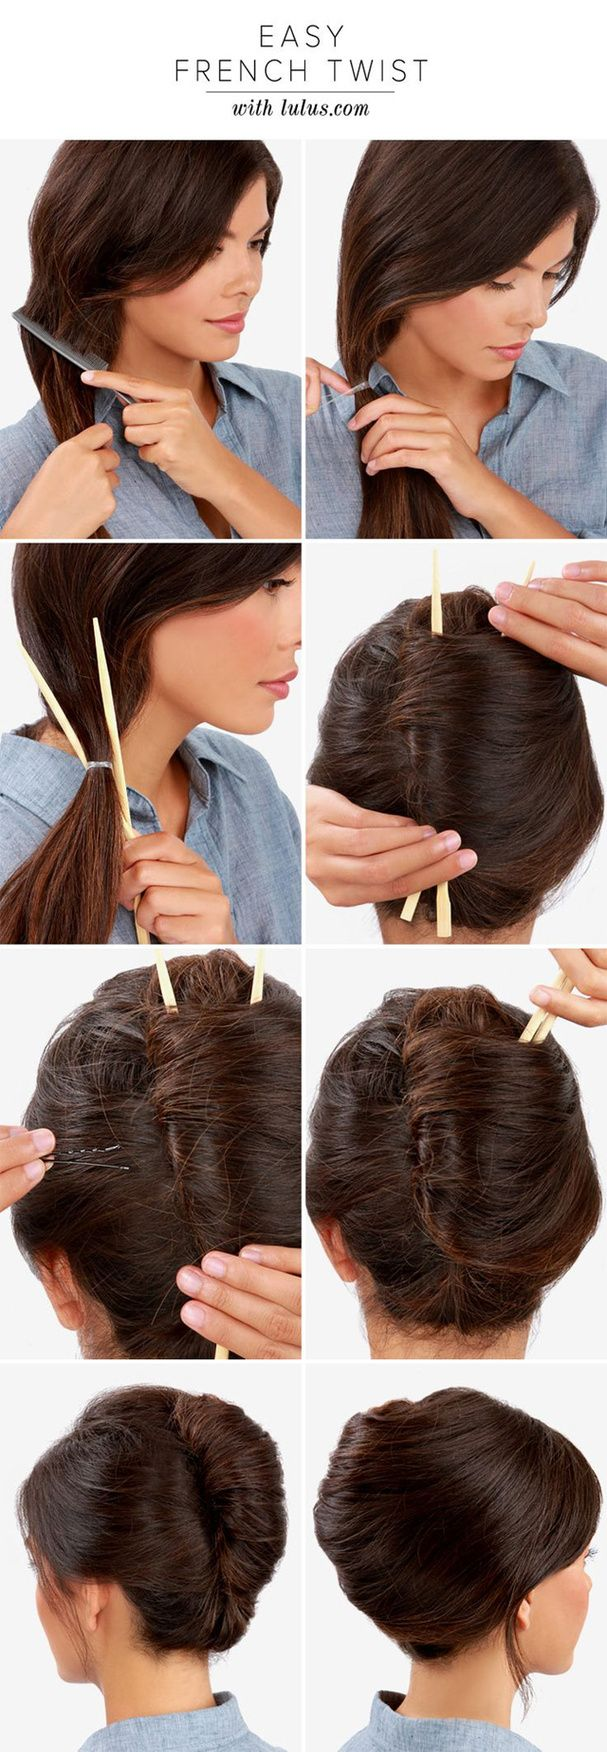 Le chignon banane avec des baguettes / easy french twist #hairstyle